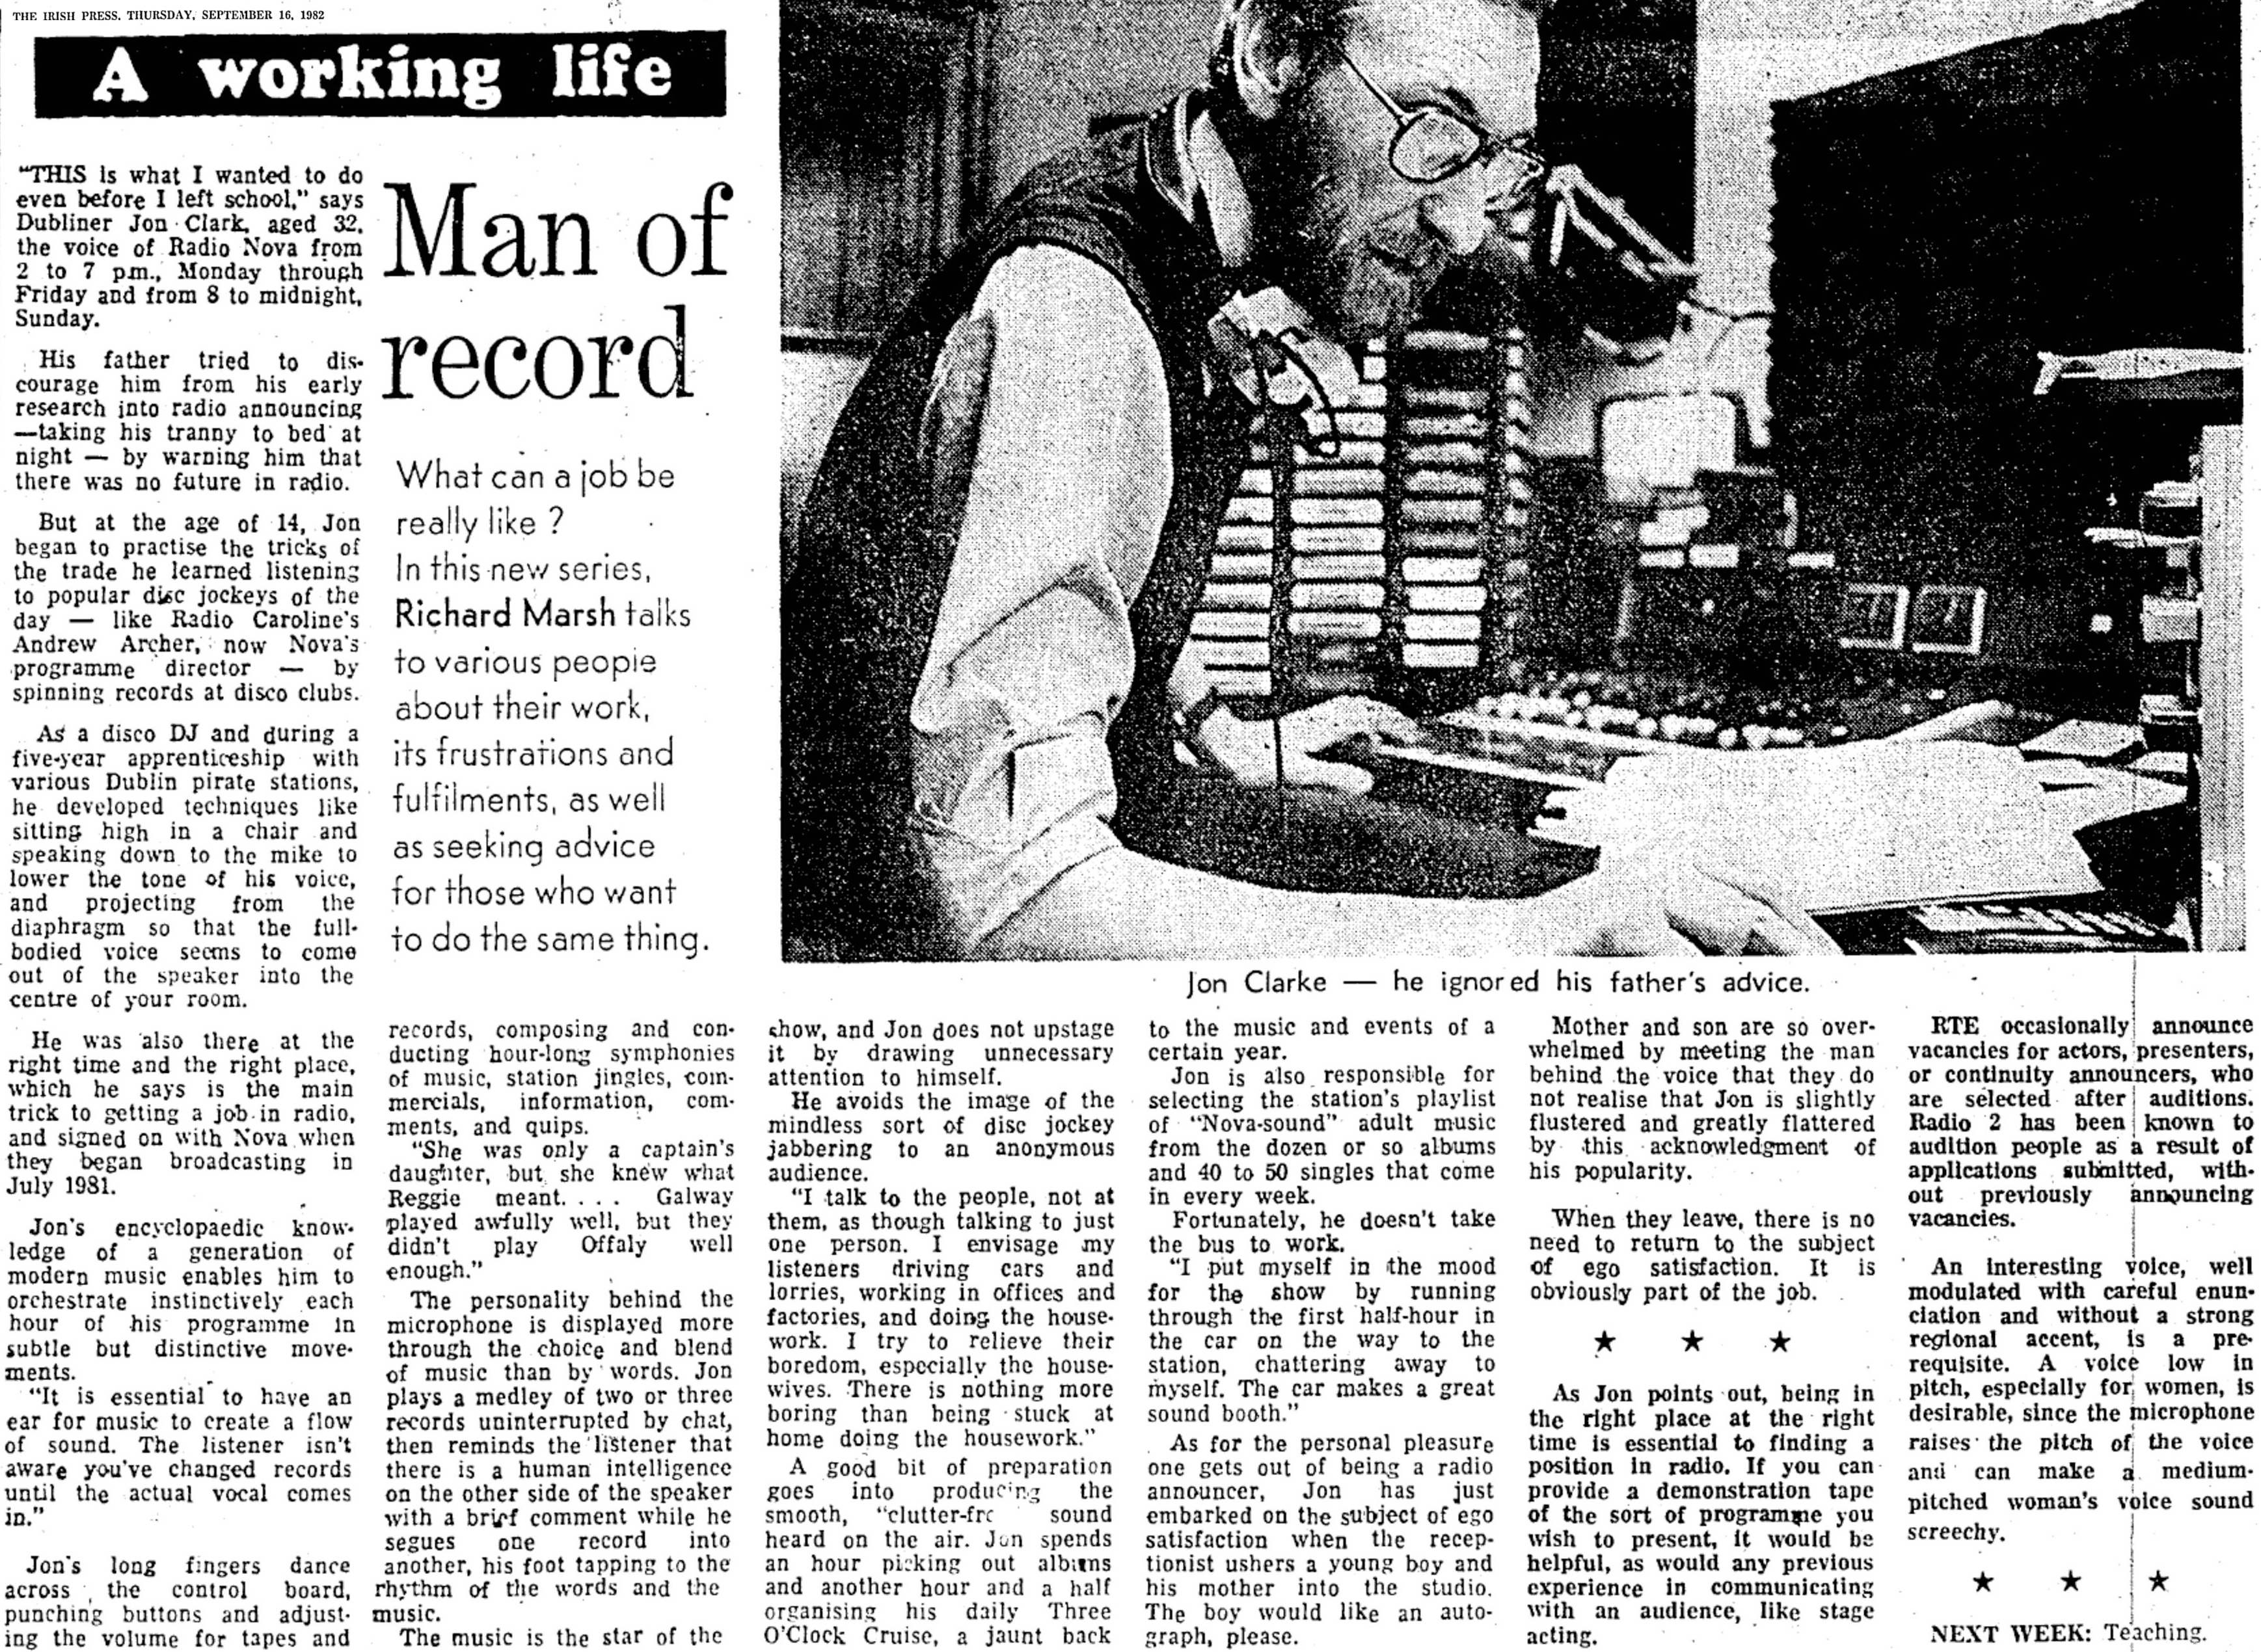 In a feature in The Irish Press (featured), Radio Nova's afternoon presenter John Clarke reveals that he talks to himself in his car as he drives to work. Nothing sinister, he is just going through his links for that day.